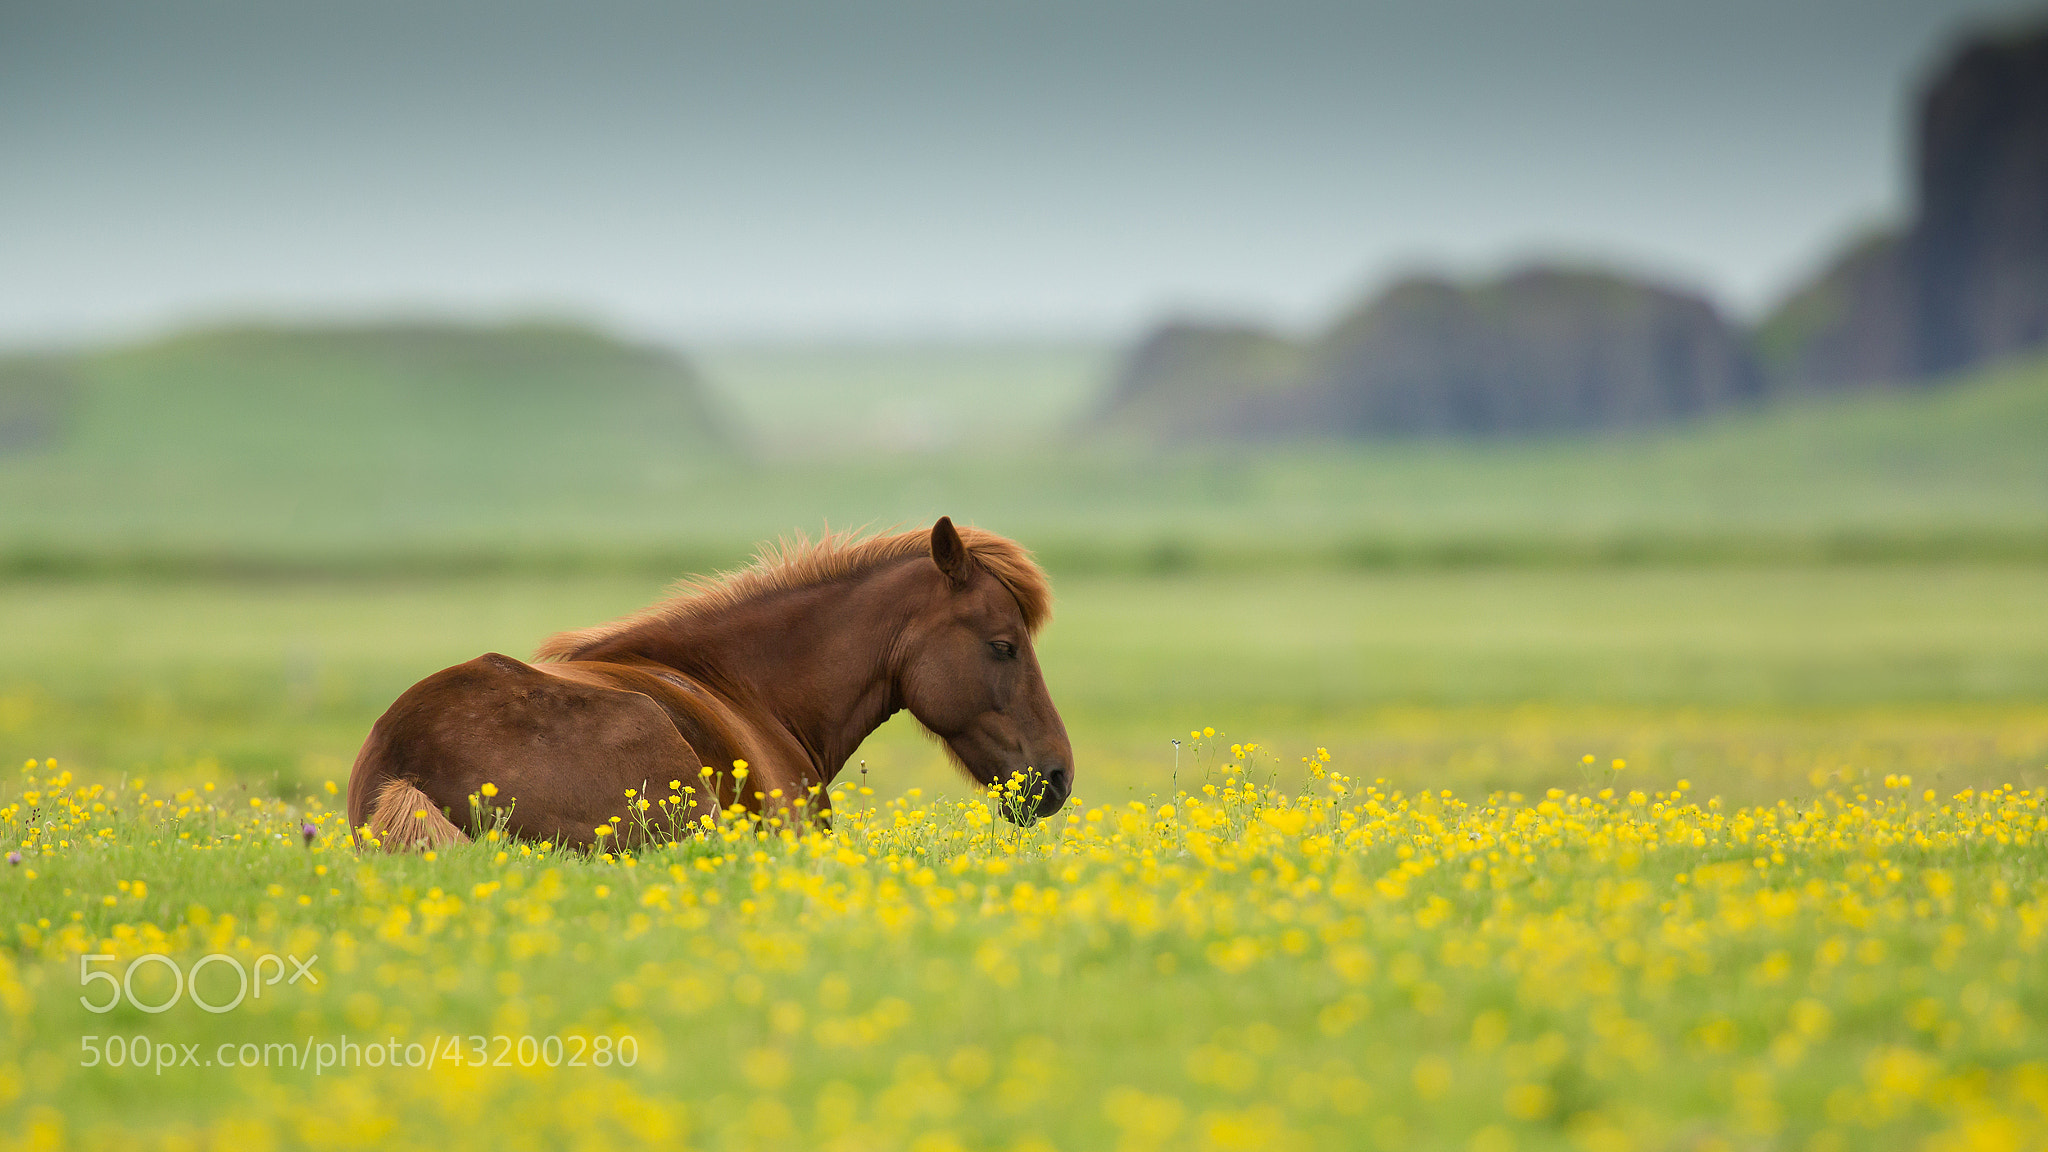 Photograph Icelandic Horse by Milan Zygmunt on 500px